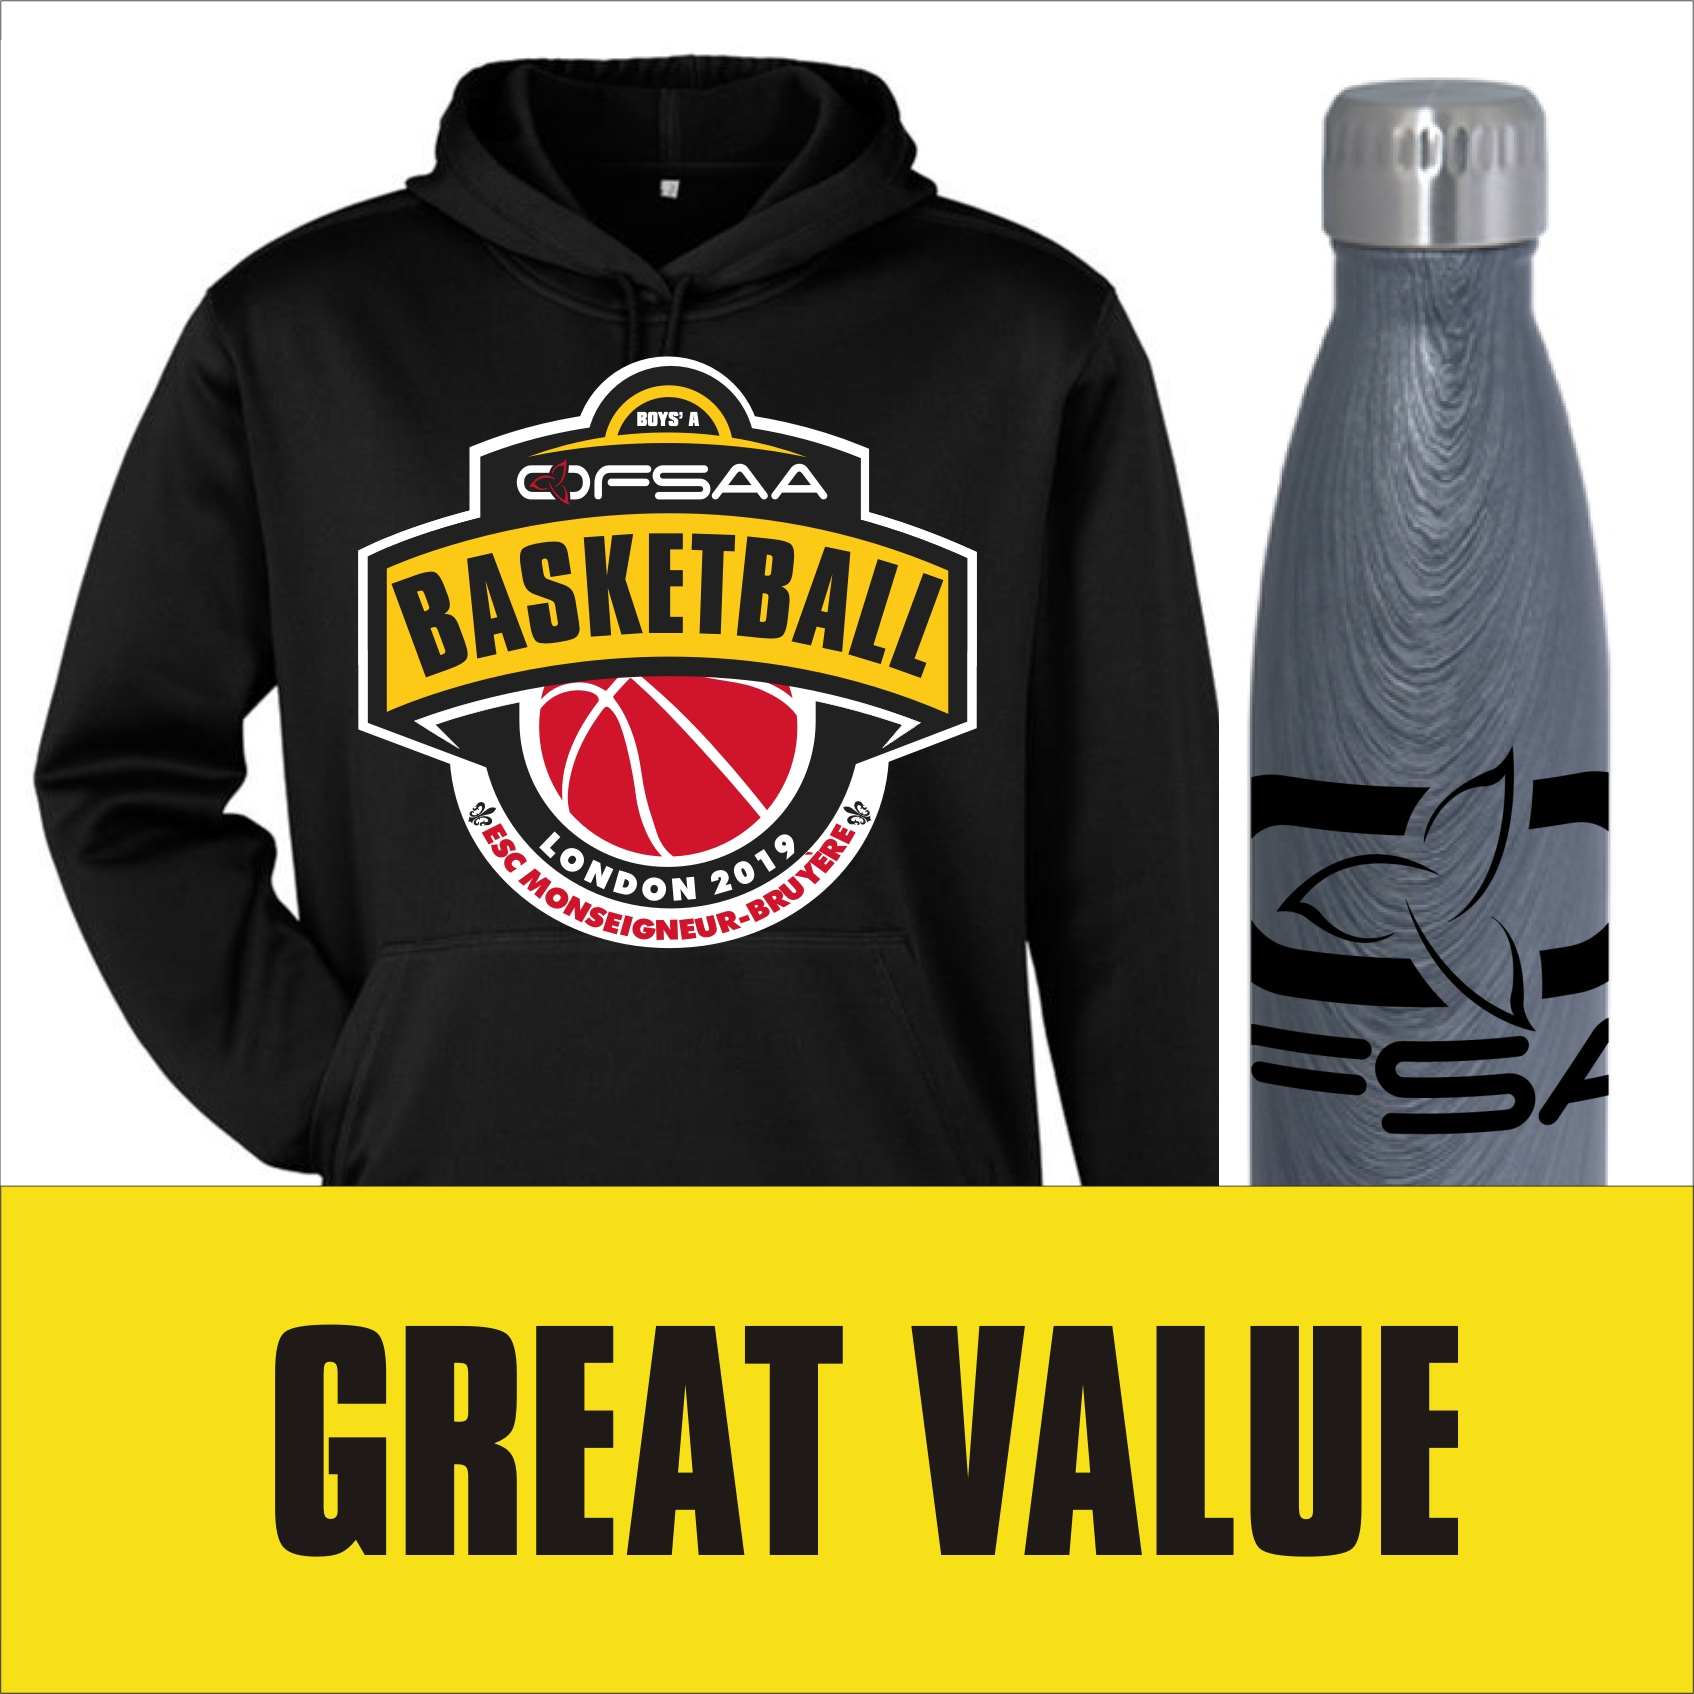 2019 Boys A Basketball Hoodie bottle bundle.jpg